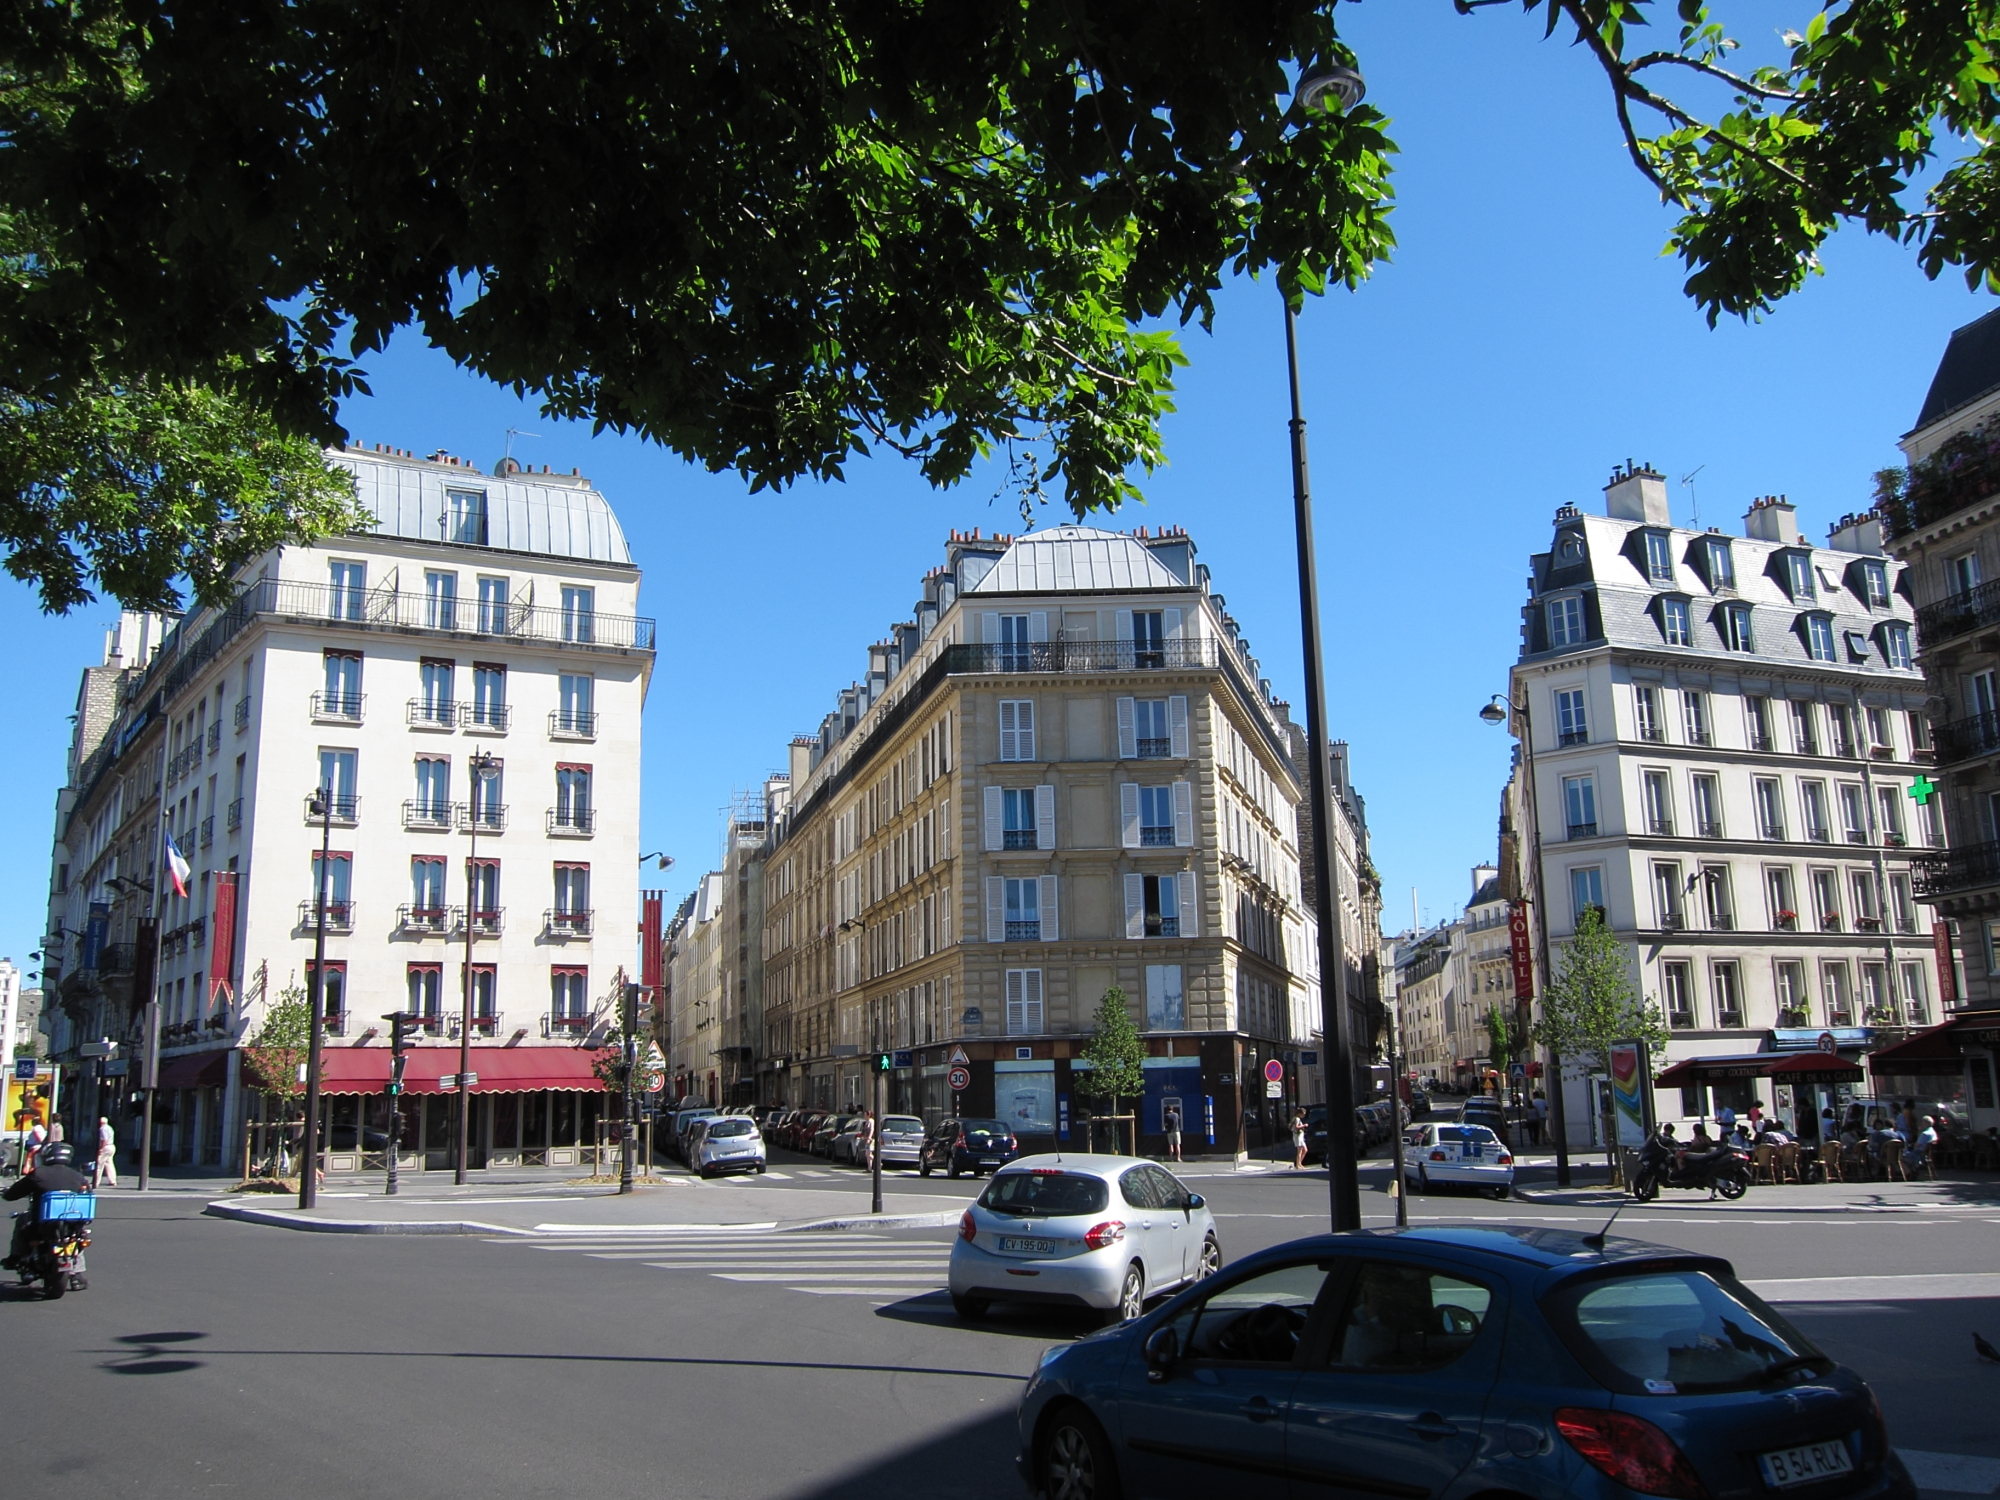 A grand square at railway station Pont-Cardinet that I had never seen, though I had visited the Square des Batignolles just across the tracks.